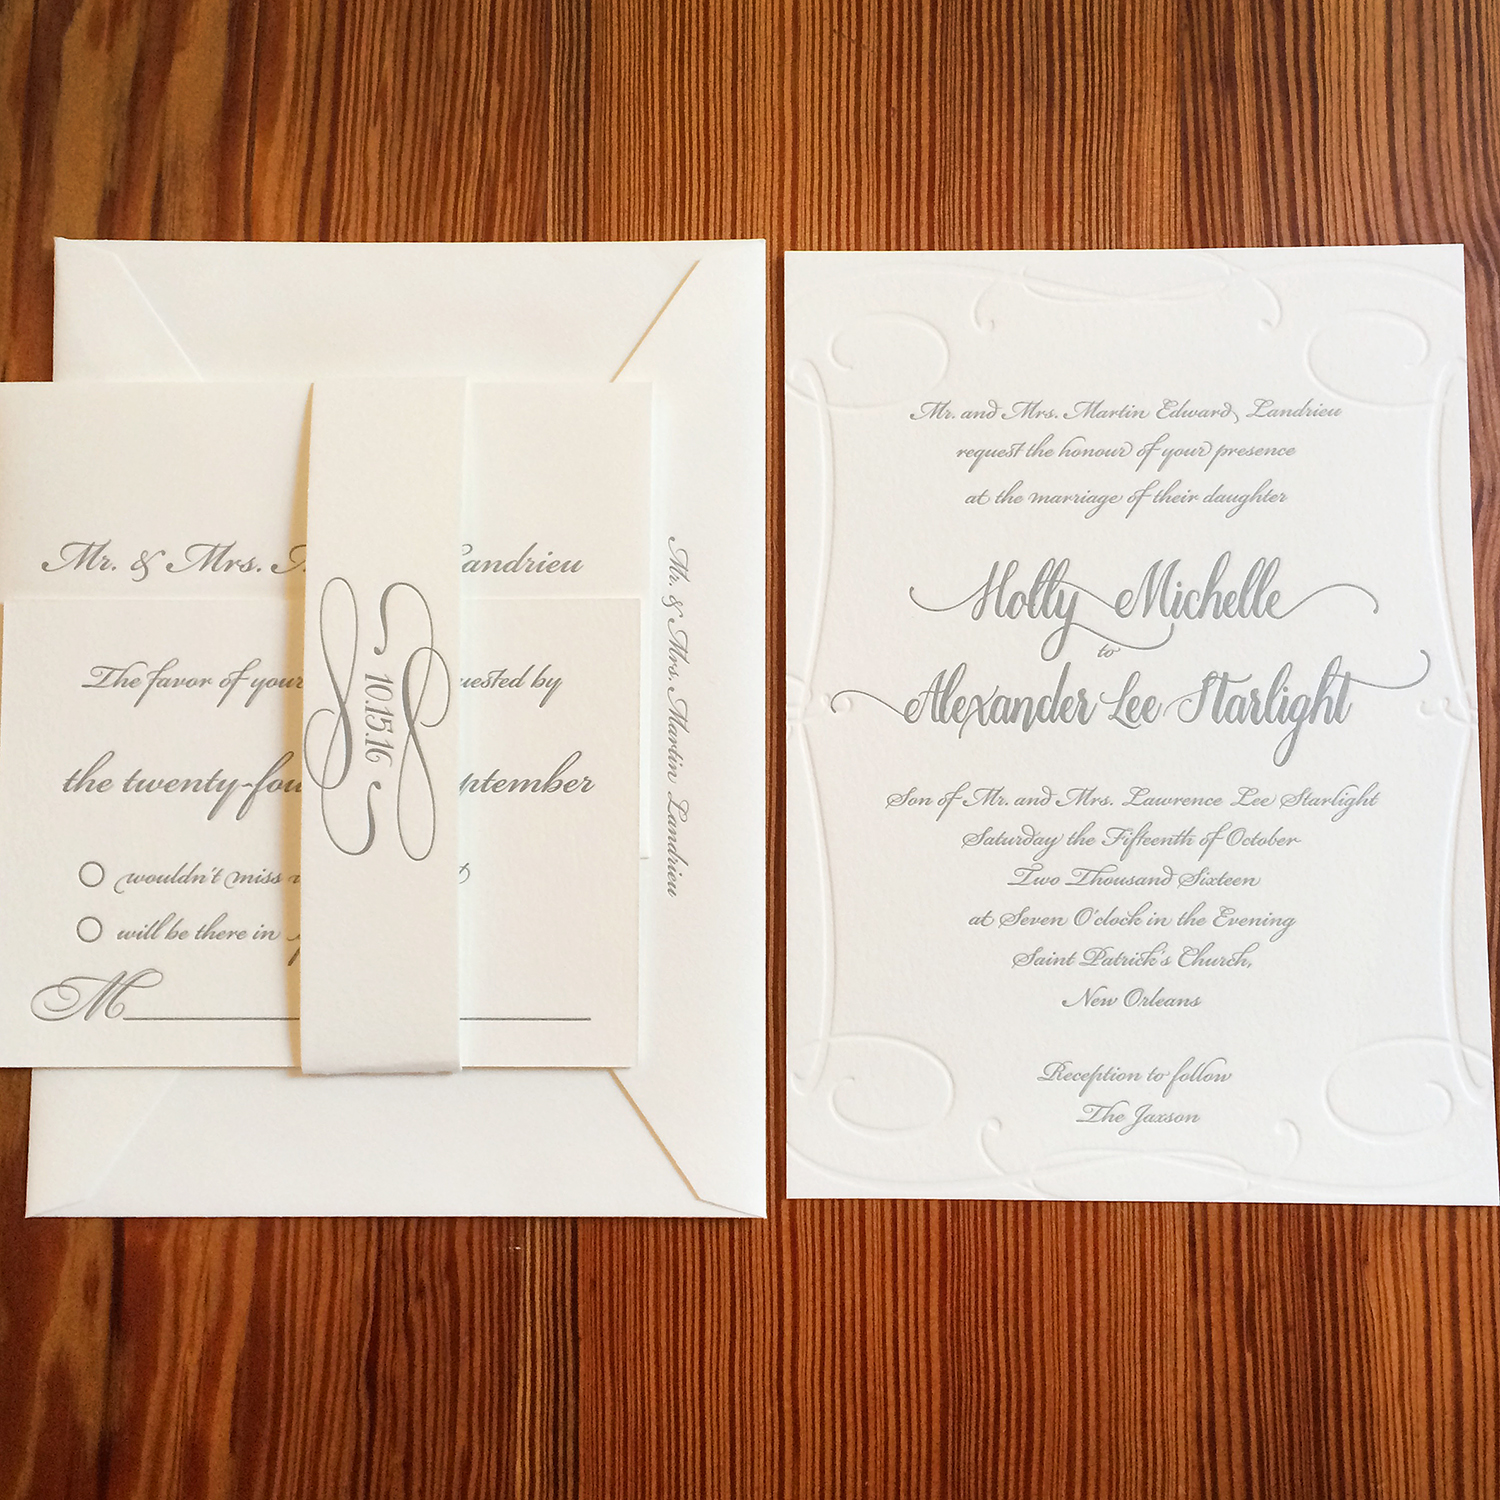 Starlight Wedding Suite Invitation Blind Stamp Belly Band.jpg